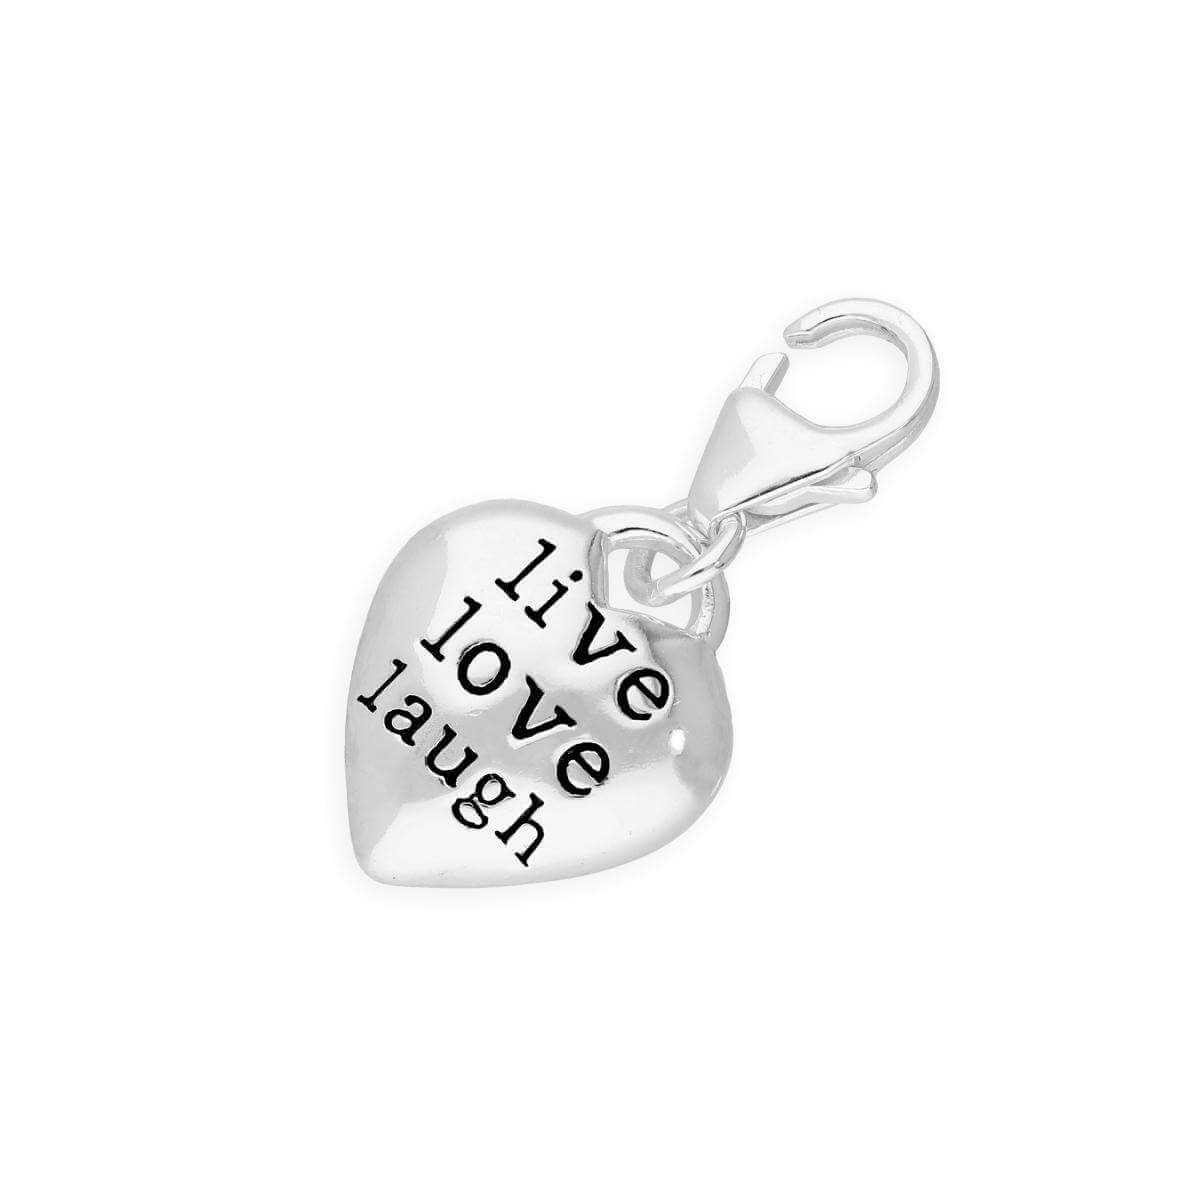 TheCharmWorks Hollow Sterling Silver Live Laugh Love Heart Pebble Clip on Charm